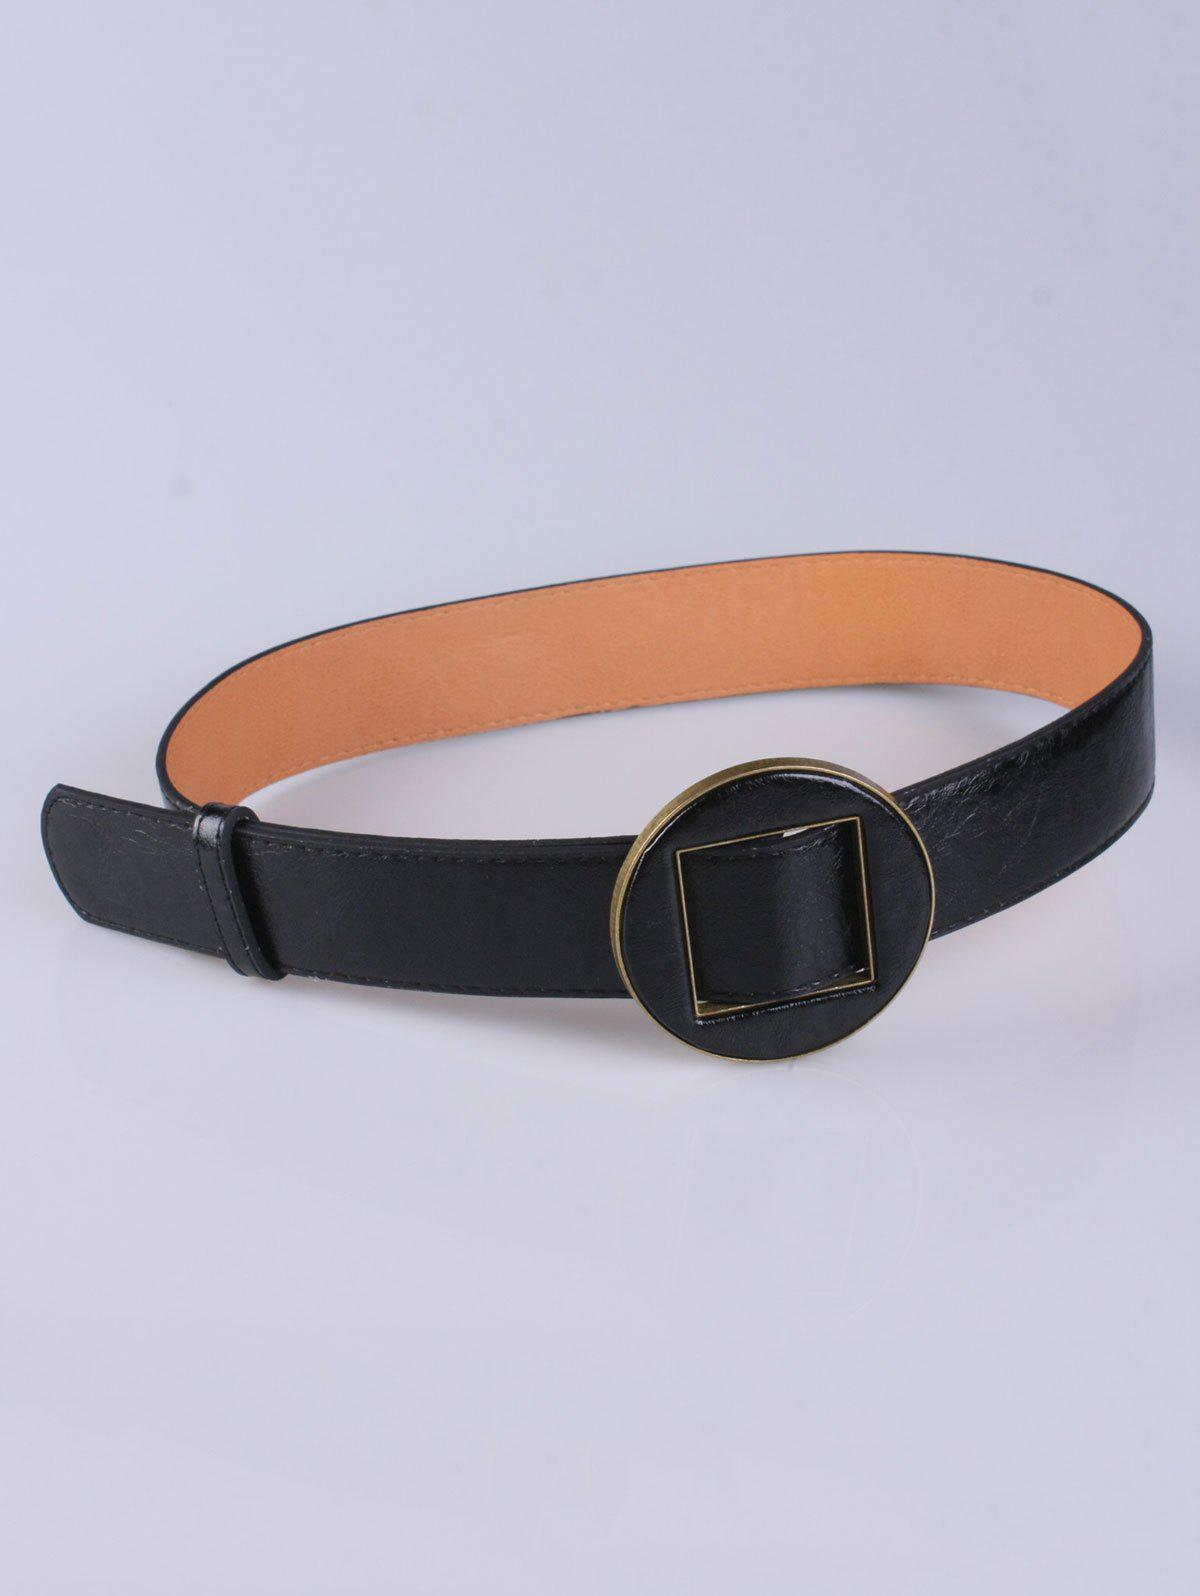 Coat Wear Hollow Square Round Buckle Wide Belt, Black